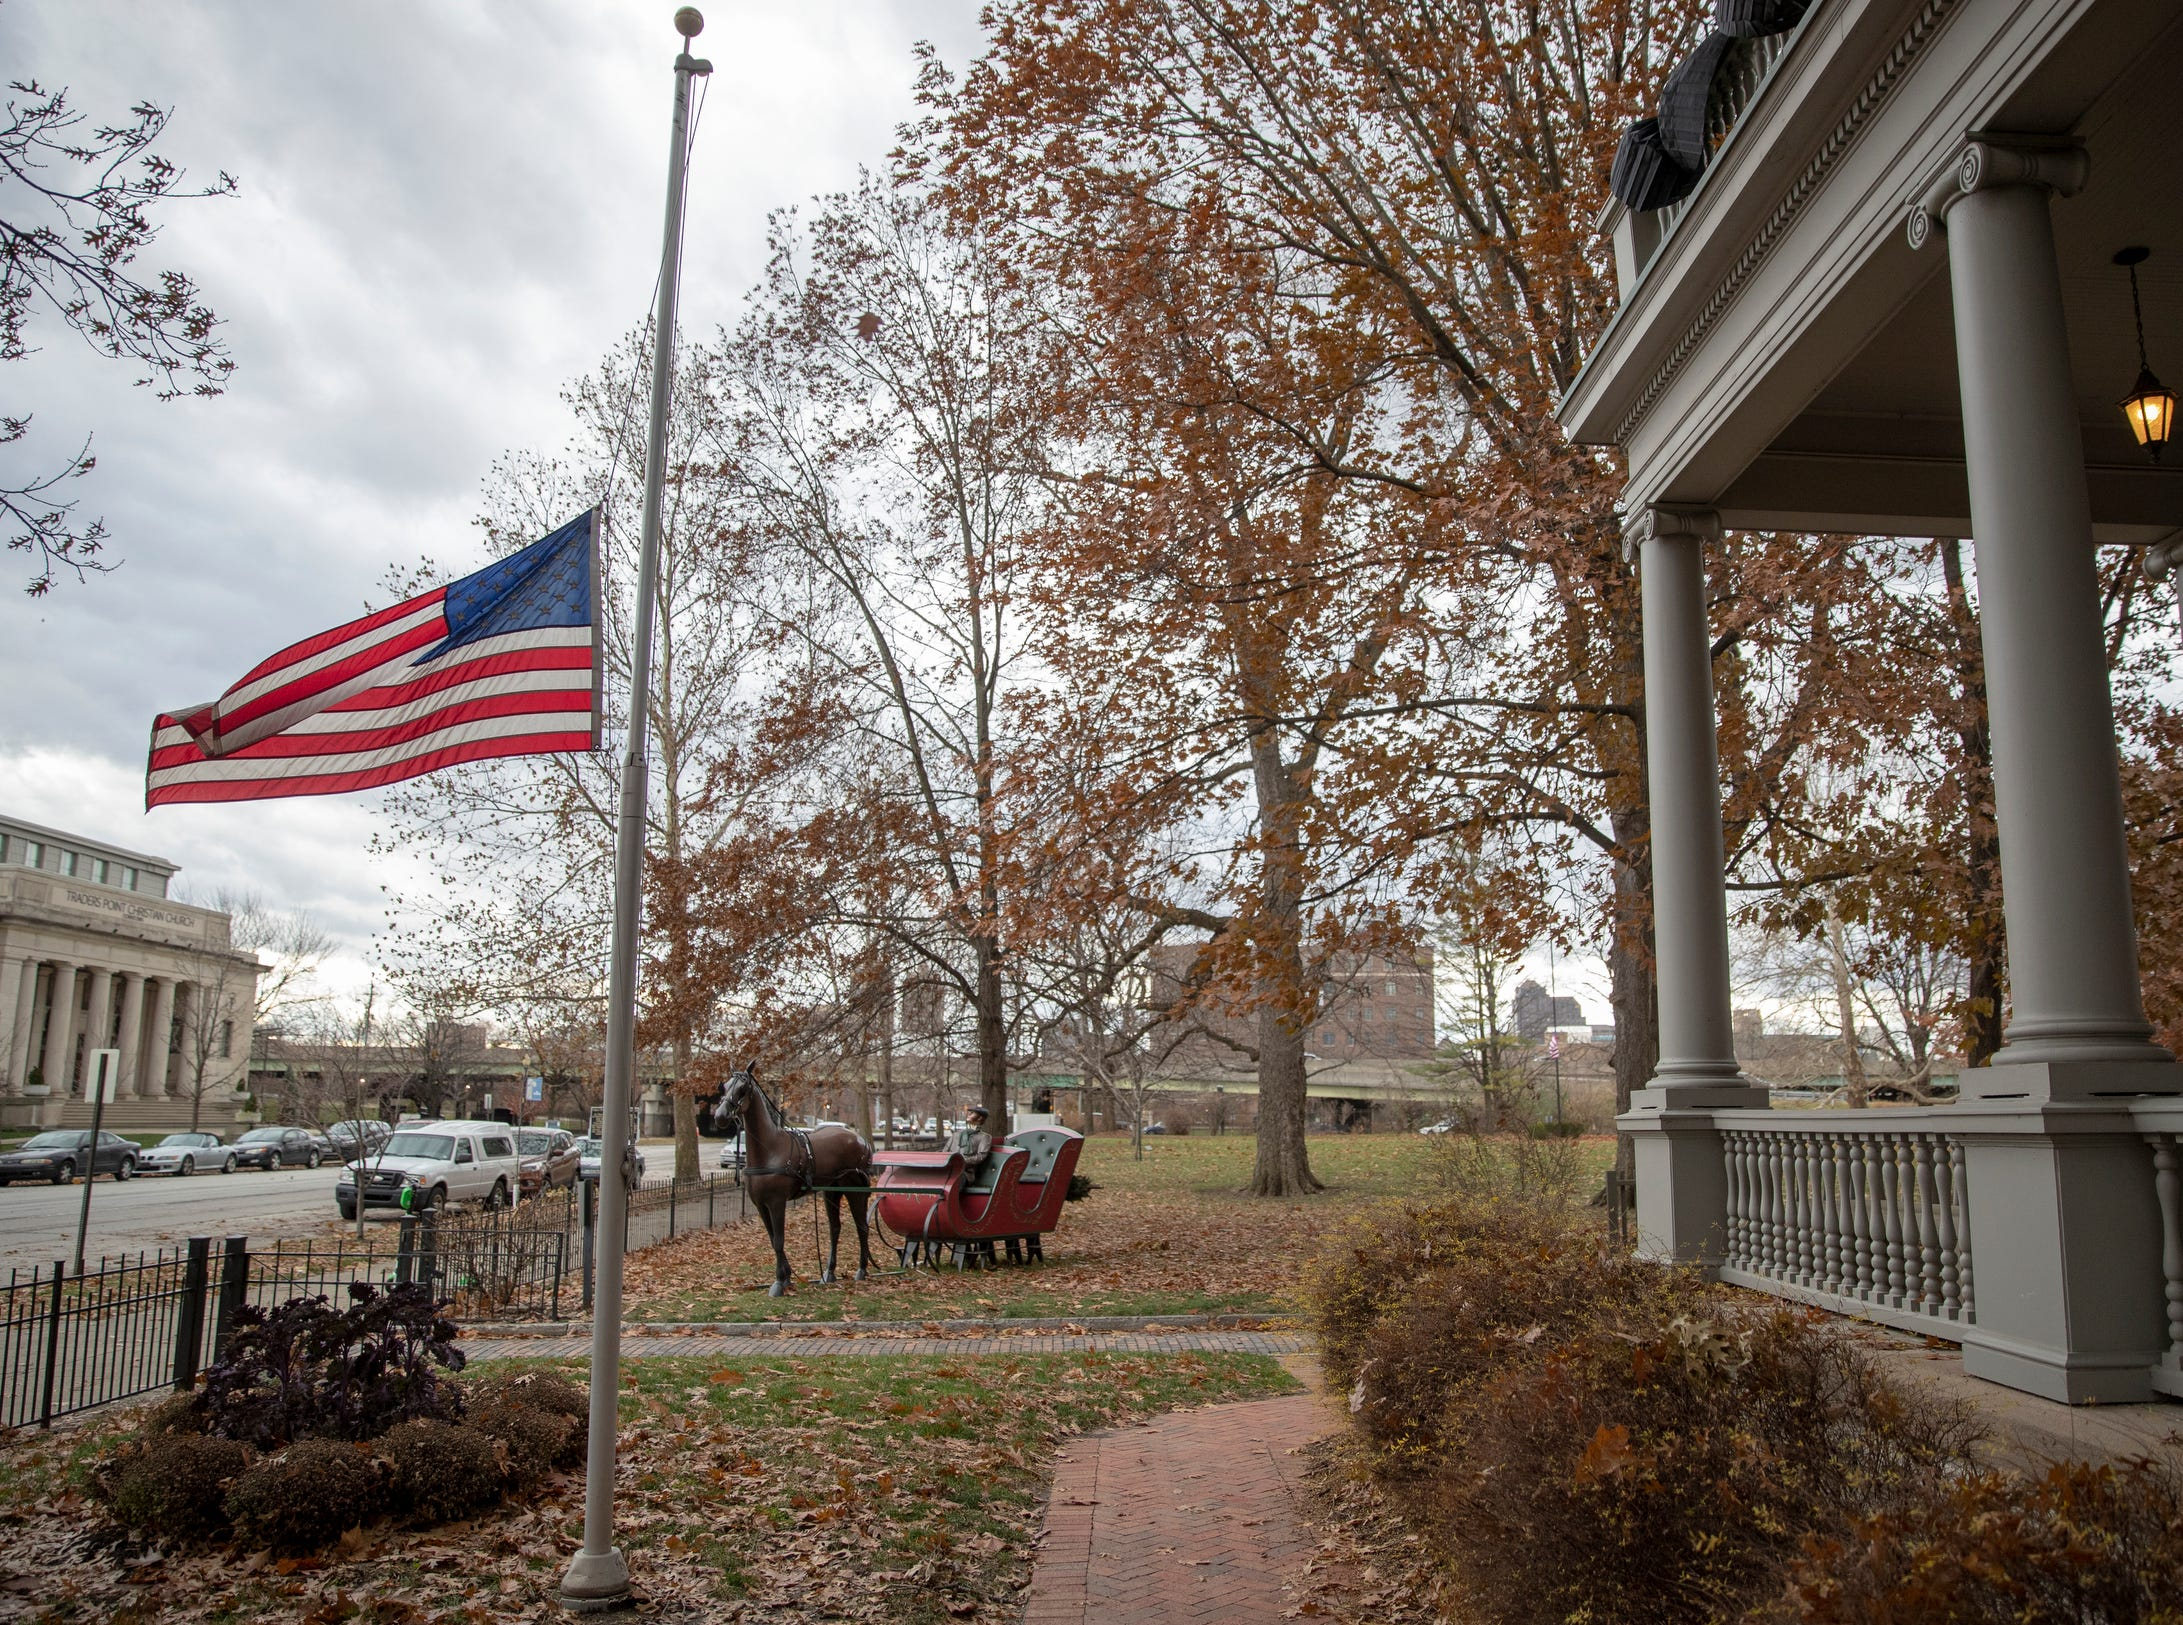 A flag at half mast at the Benjamin Harrison Presidential Site, Indianapolis, Sunday, Dec. 2, 2018. This flag, and nearby mourning bunting, pay respects to George H. W. Bush, the 41st President, who died on Friday evening in Houston.